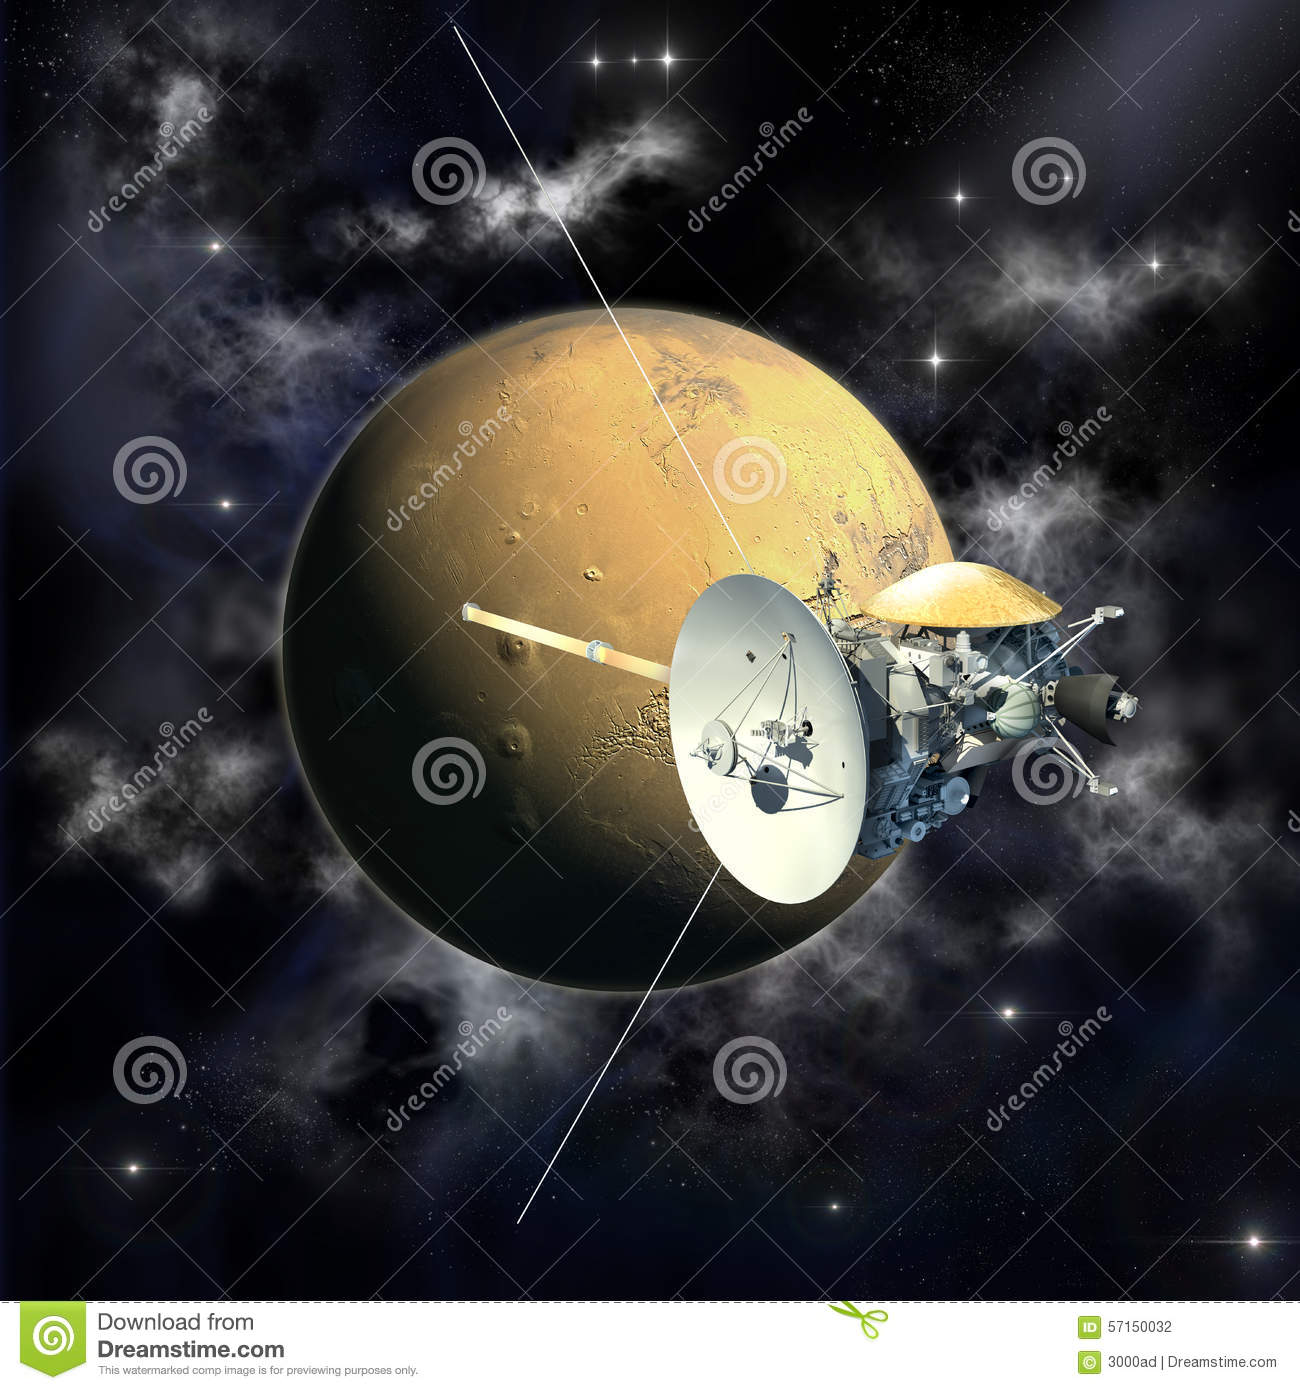 Missionary Time- Planet Planet-mk